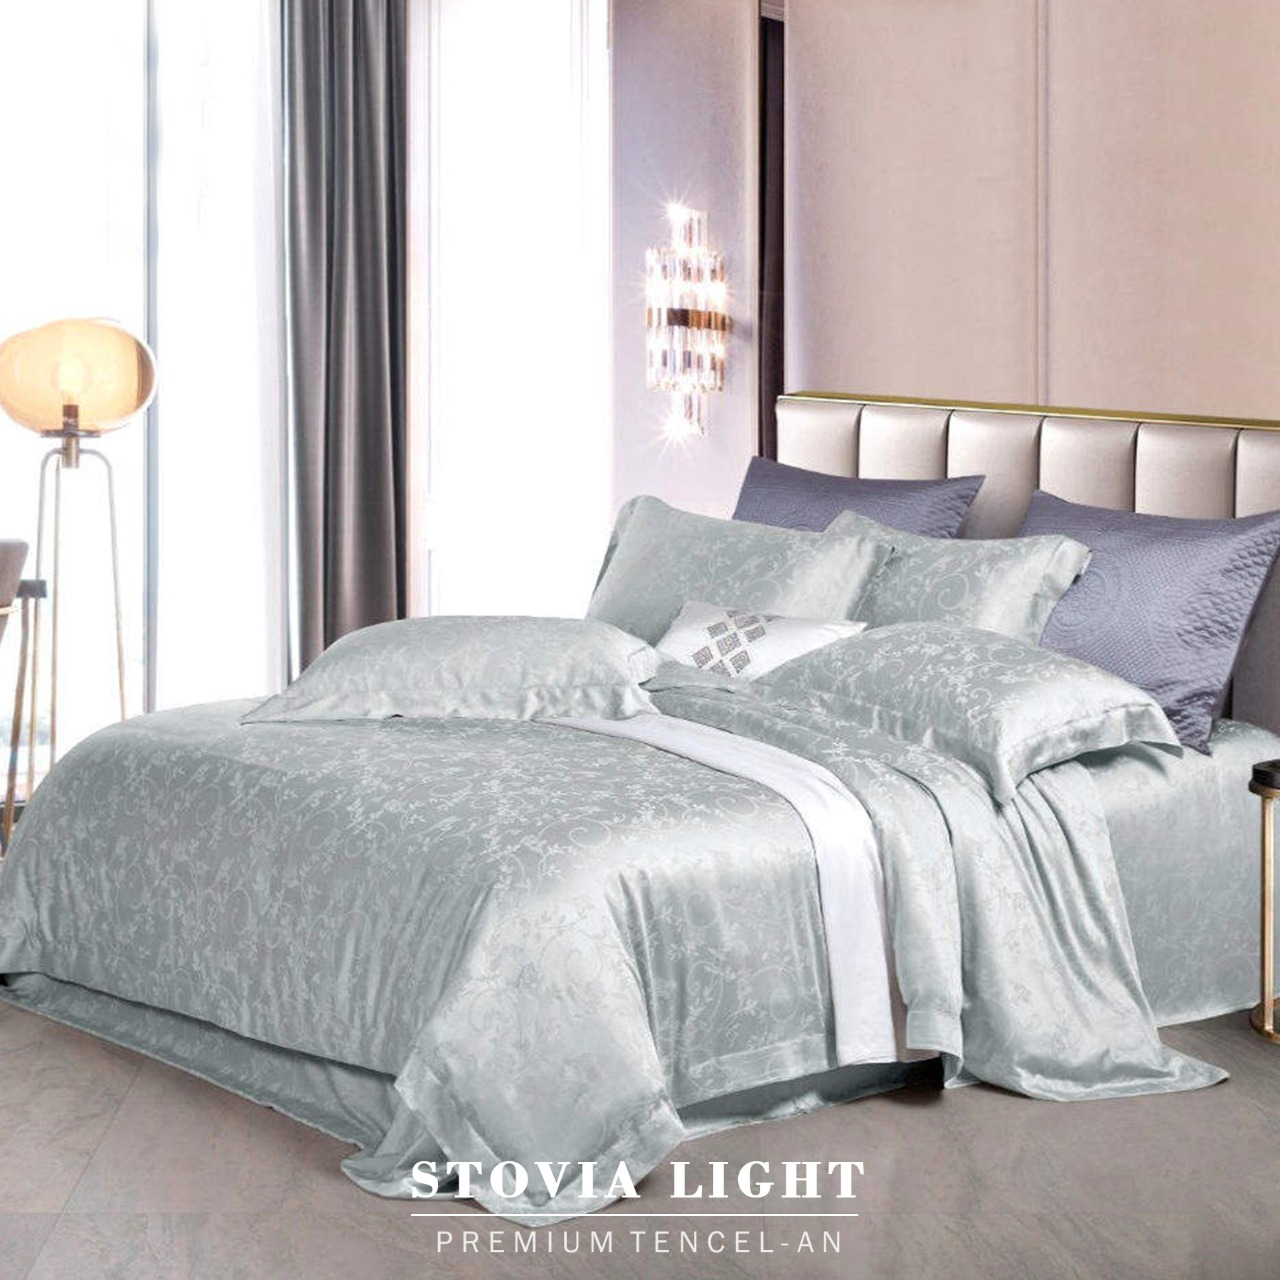 Stovia - Premium Tencel Bedding Set